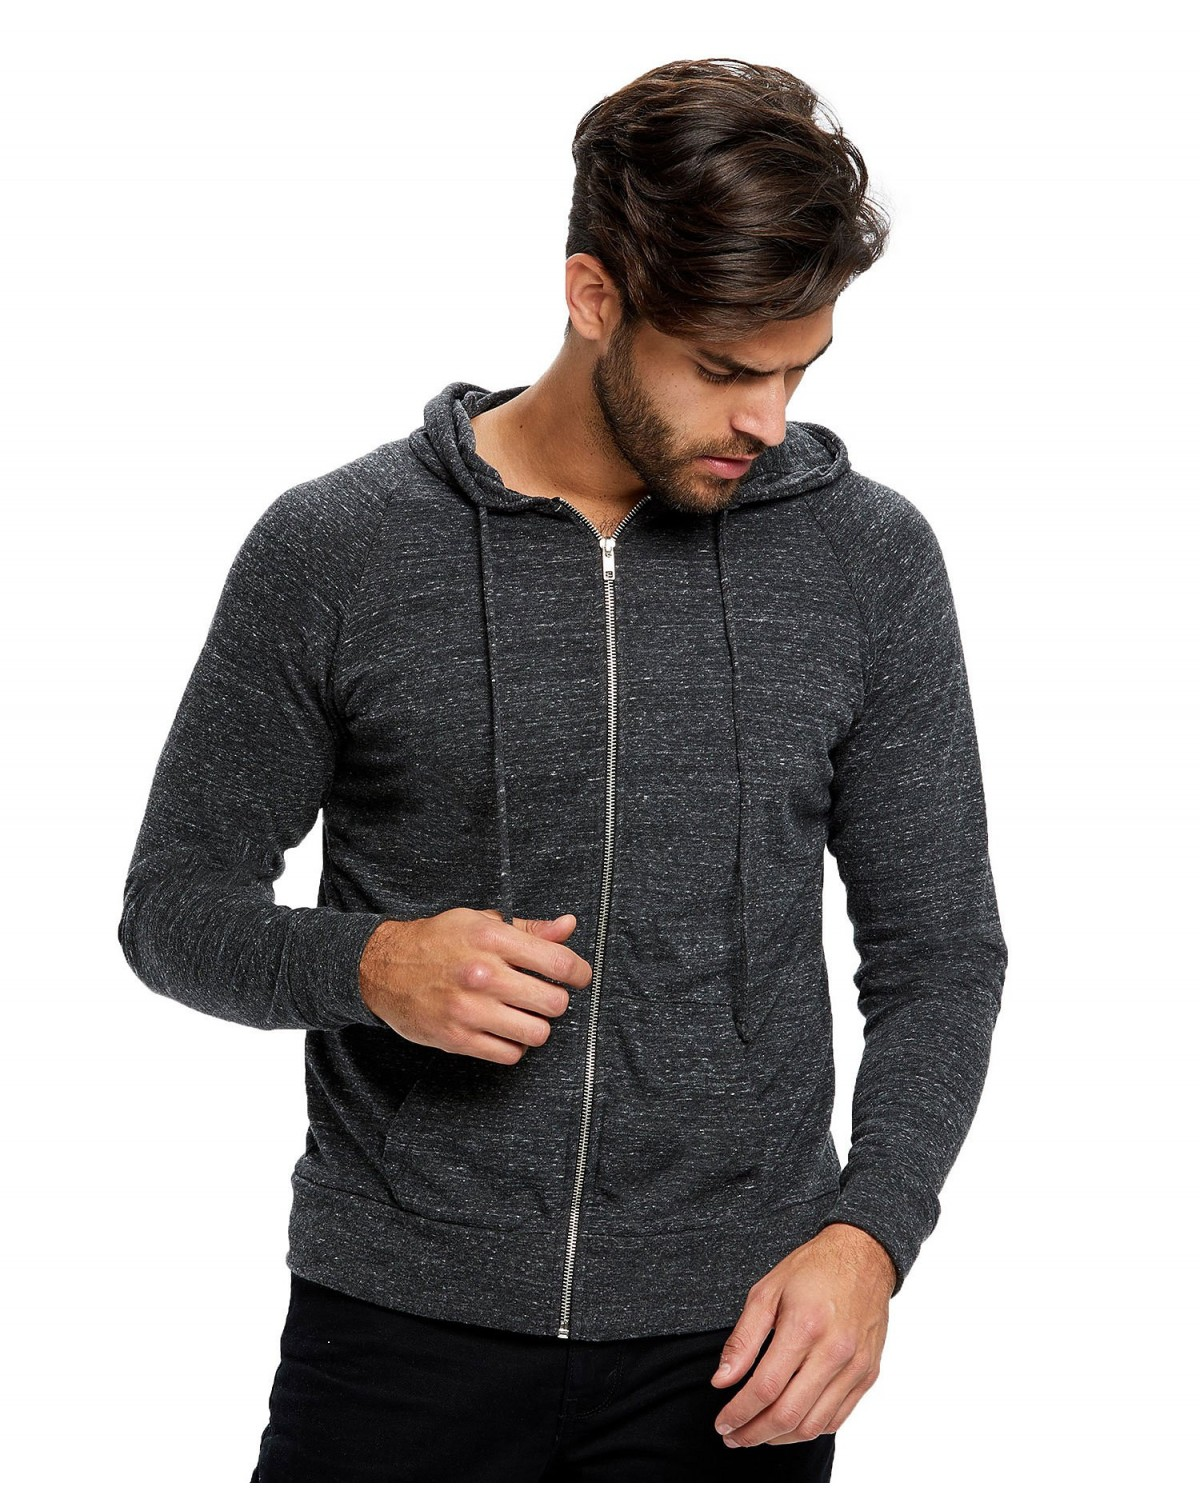 AAHVT3529W American Apparel